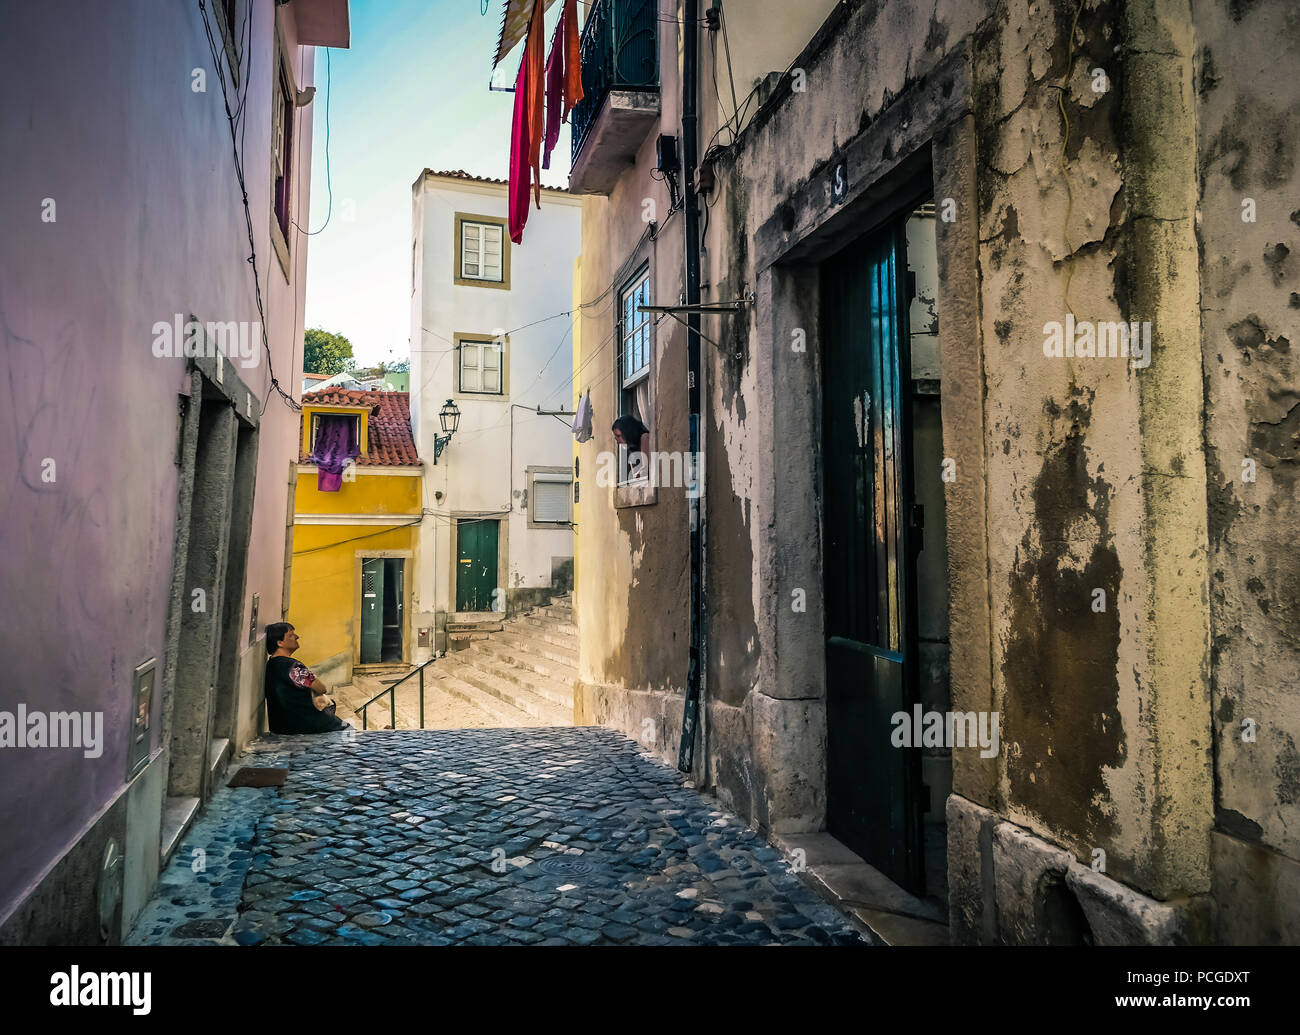 Lisbon. Narrow alley in the arabic rooted Alfama neighborhood. - Stock Image